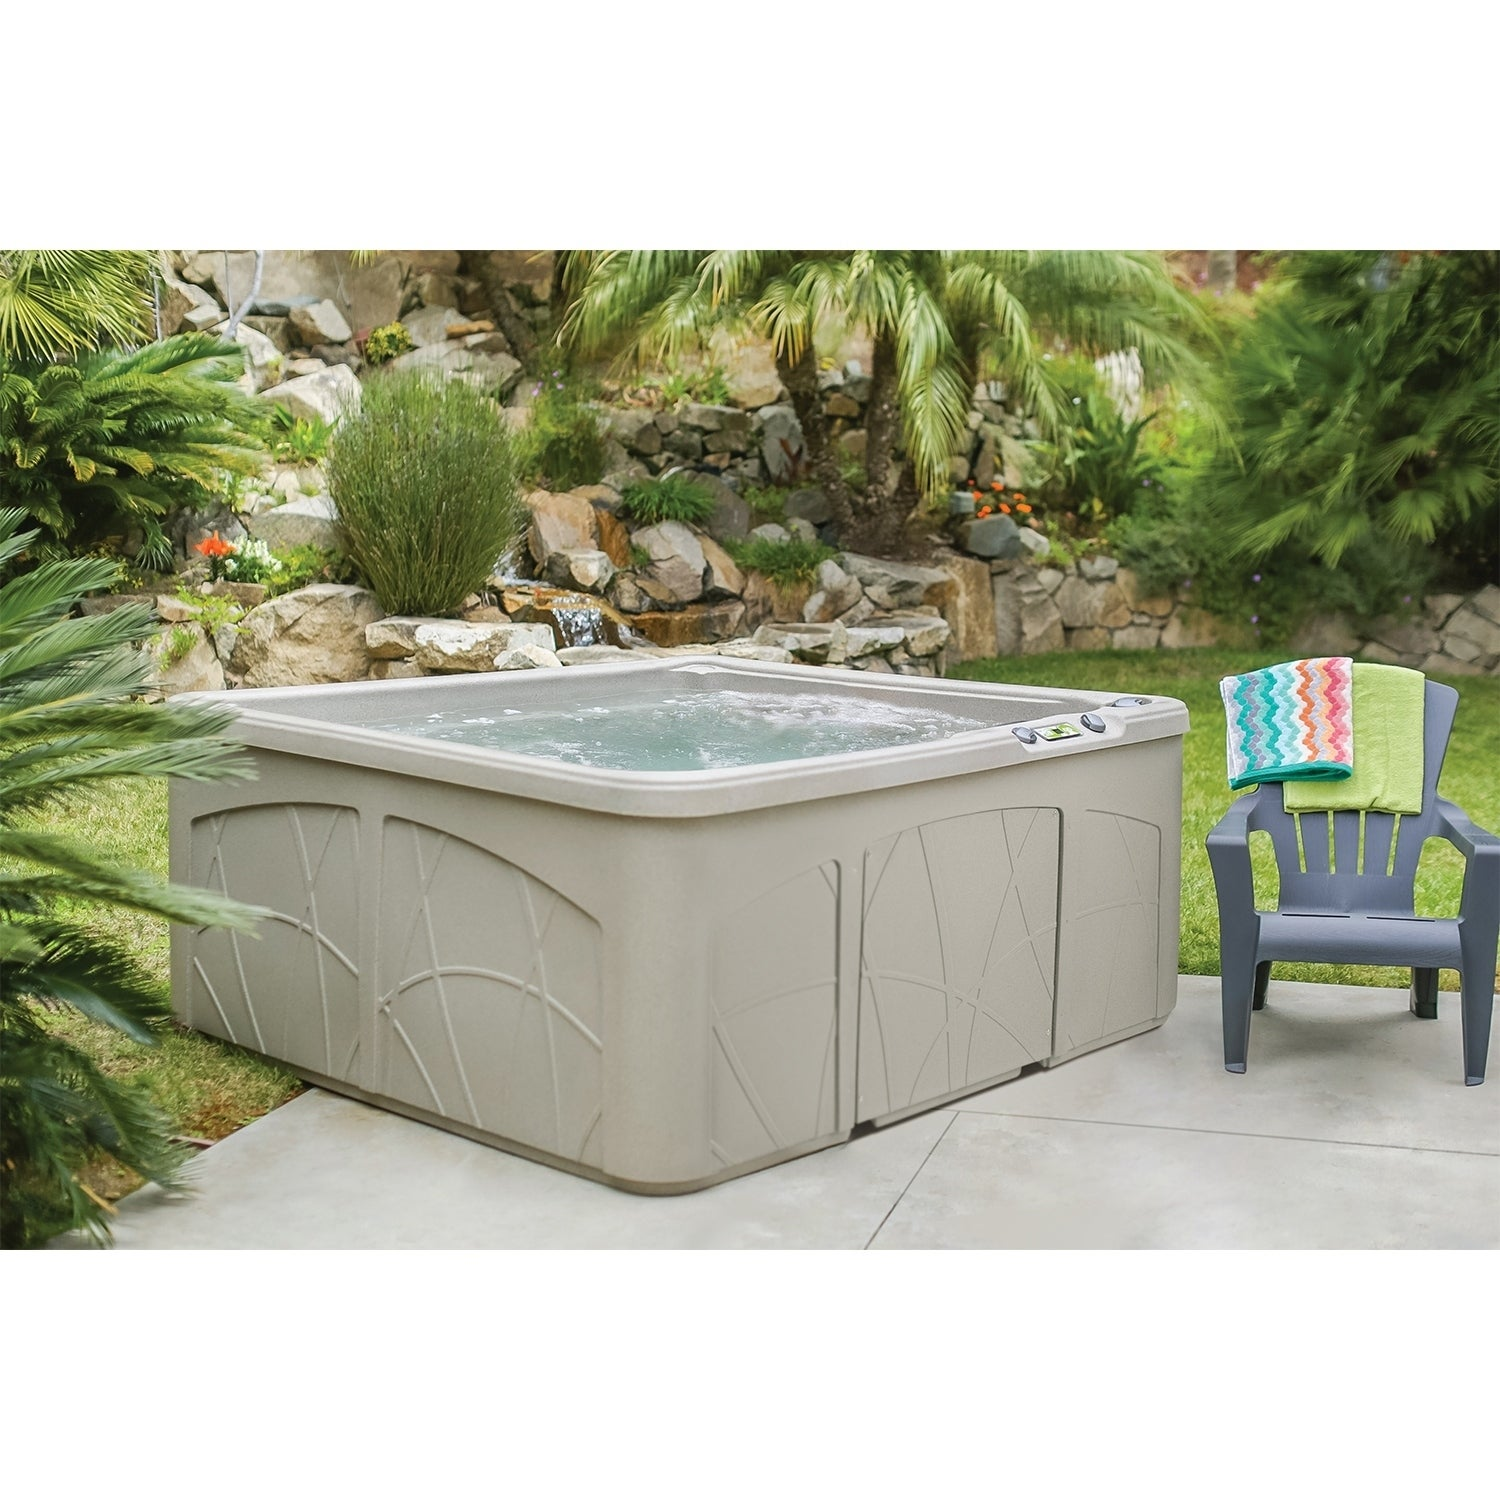 Shop Lifesmart LS350DX 5-person 28-jet Spa - Free Shipping Today ...